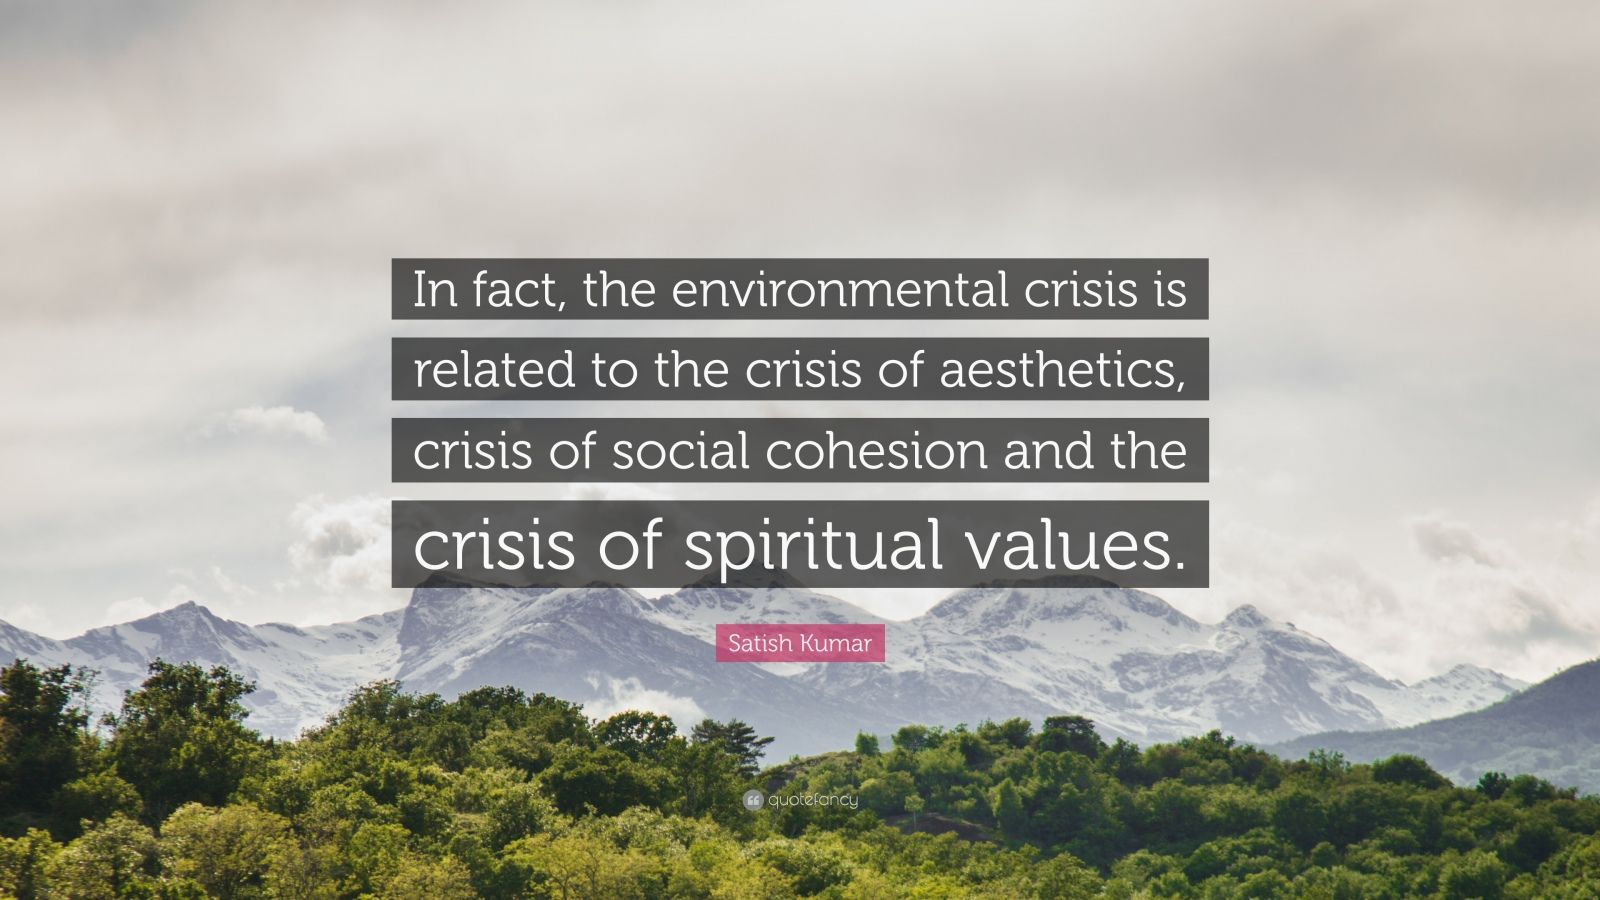 """Satish Kumar Quote: """"In fact, the environmental crisis is related to the crisis of aesthetics, crisis of social cohesion and the crisis of spiritual values."""""""